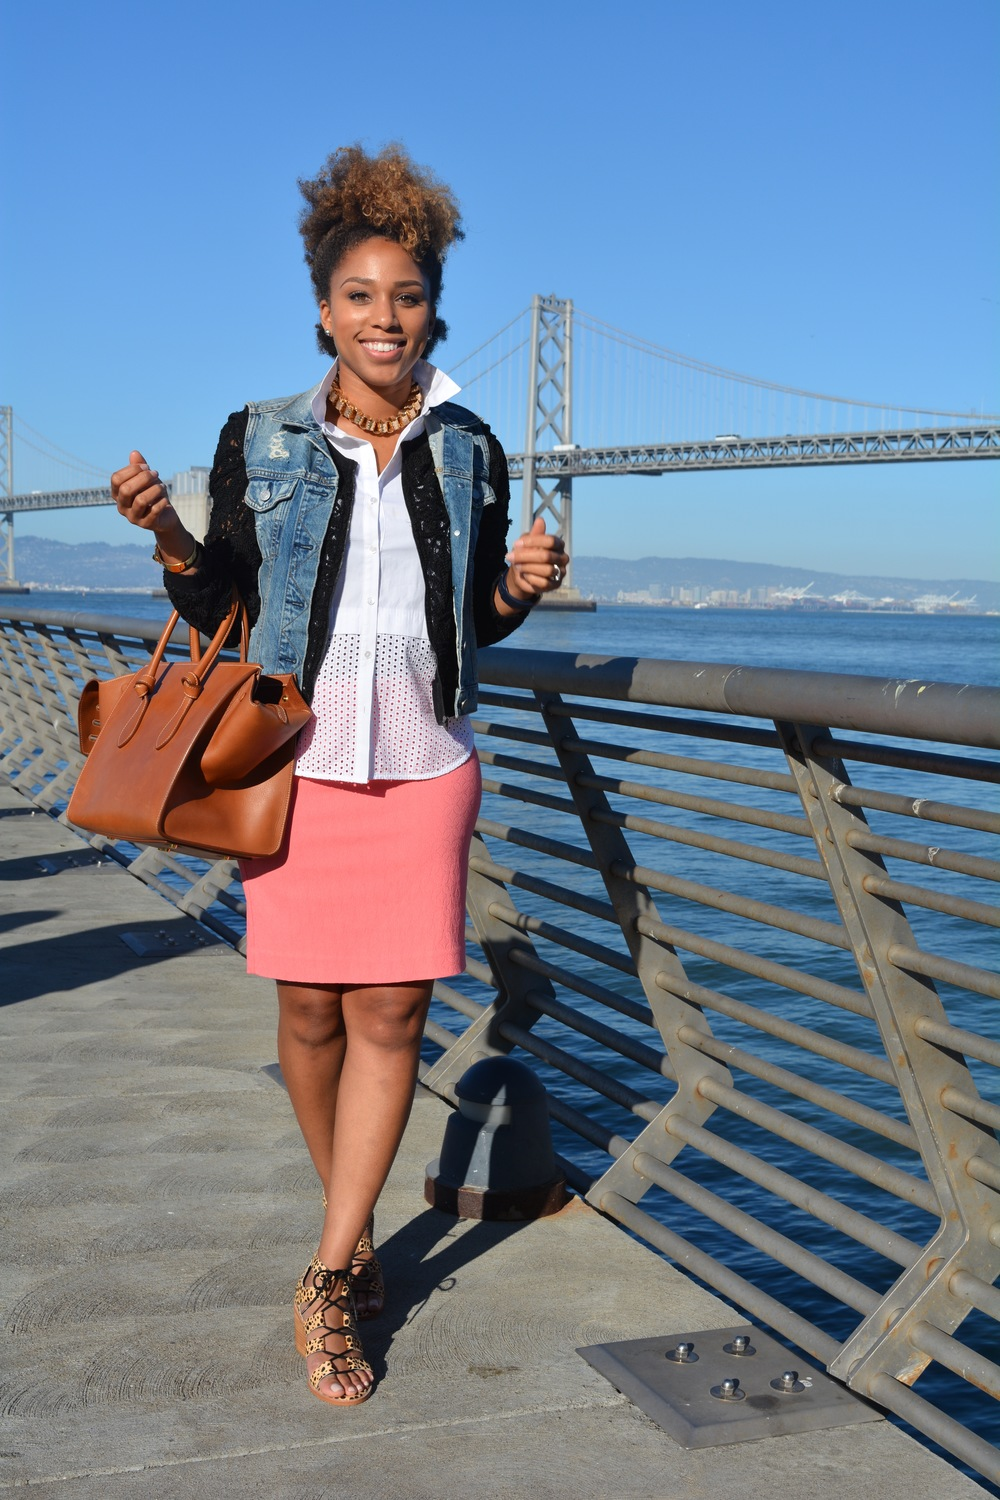 Partnering with Stitch Fix to serve this work-to-street-style look from head to toe!